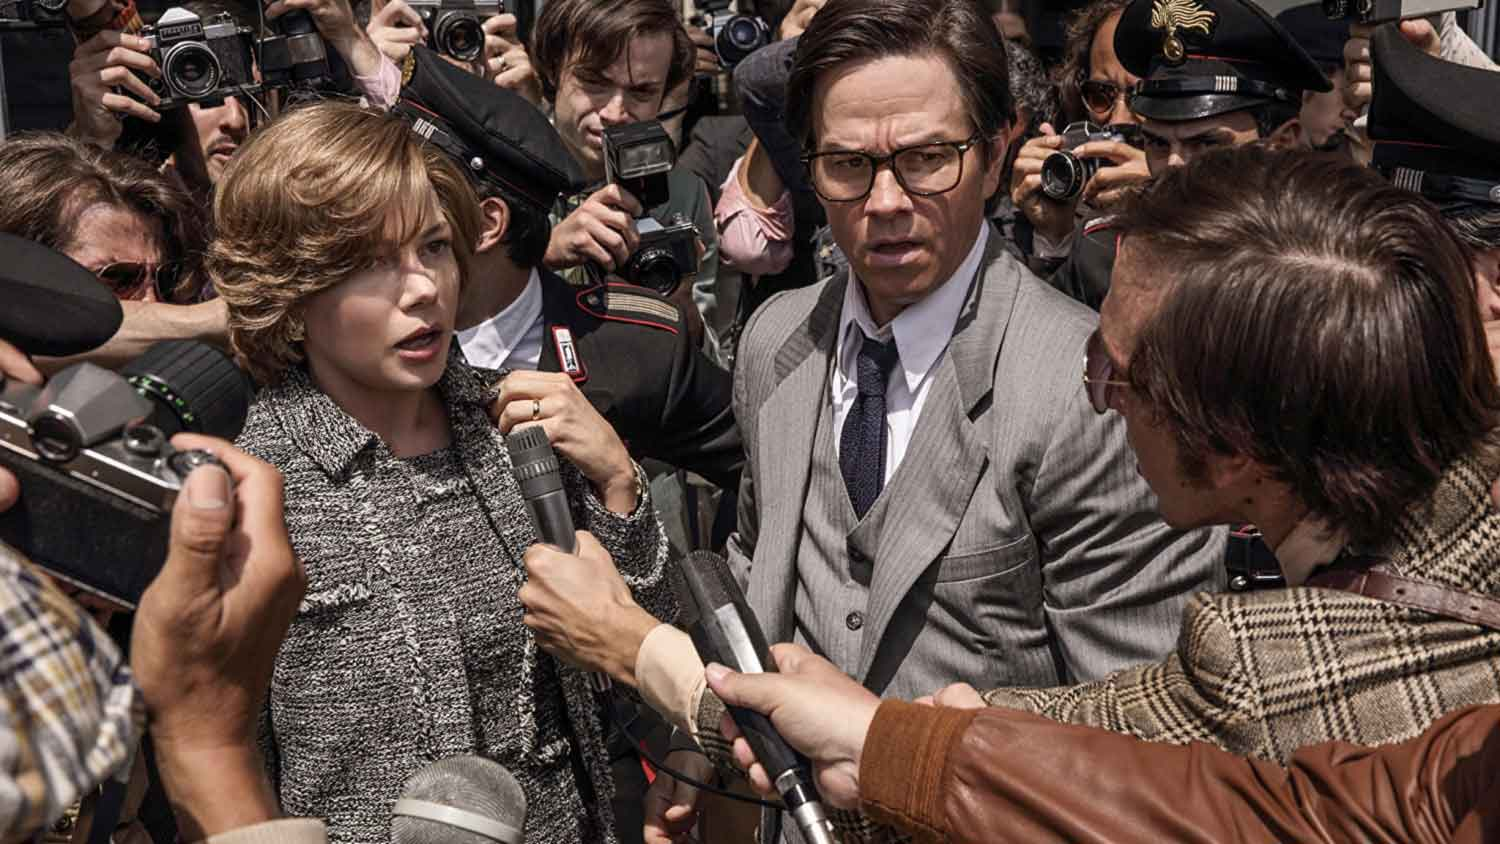 All The Money In The World Review - OC Movie Reviews - Movie Reviews, Movie News, Documentary Reviews, Short Films, Short Film Reviews, Trailers, Movie Trailers, Interviews, film reviews, film news, hollywood, indie films, documentaries